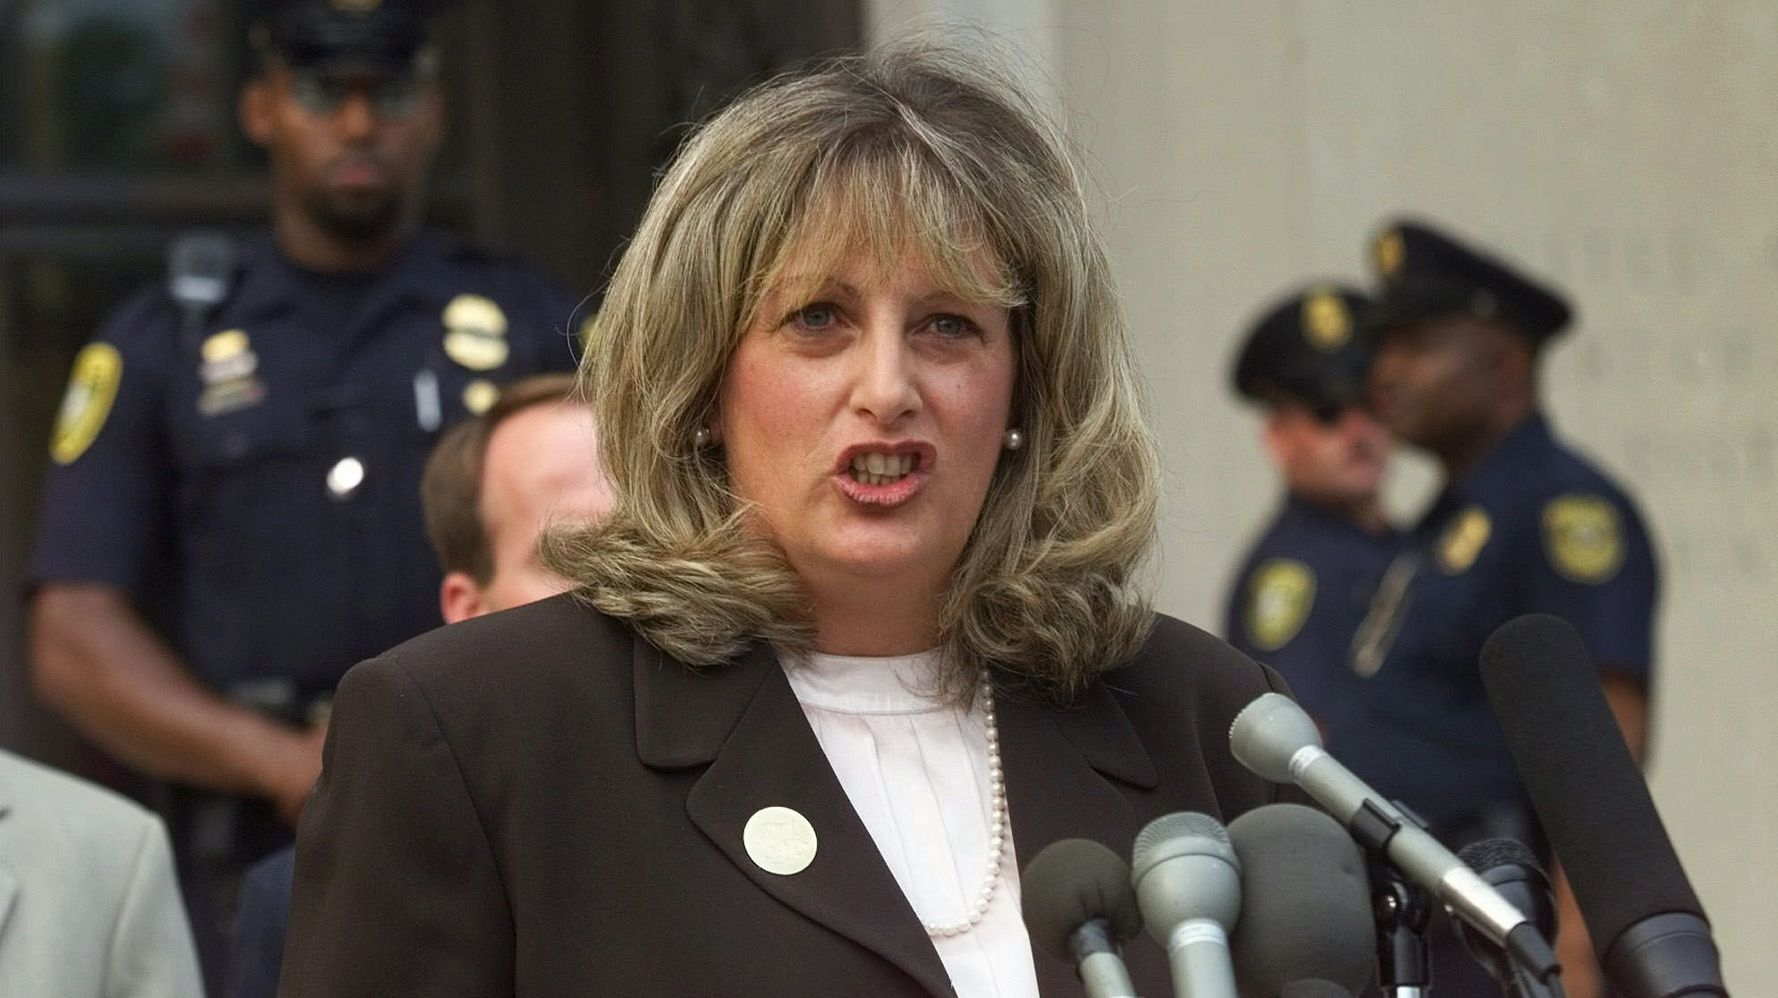 Clinton Whistleblower Linda Tripp Dead At 70: Reports